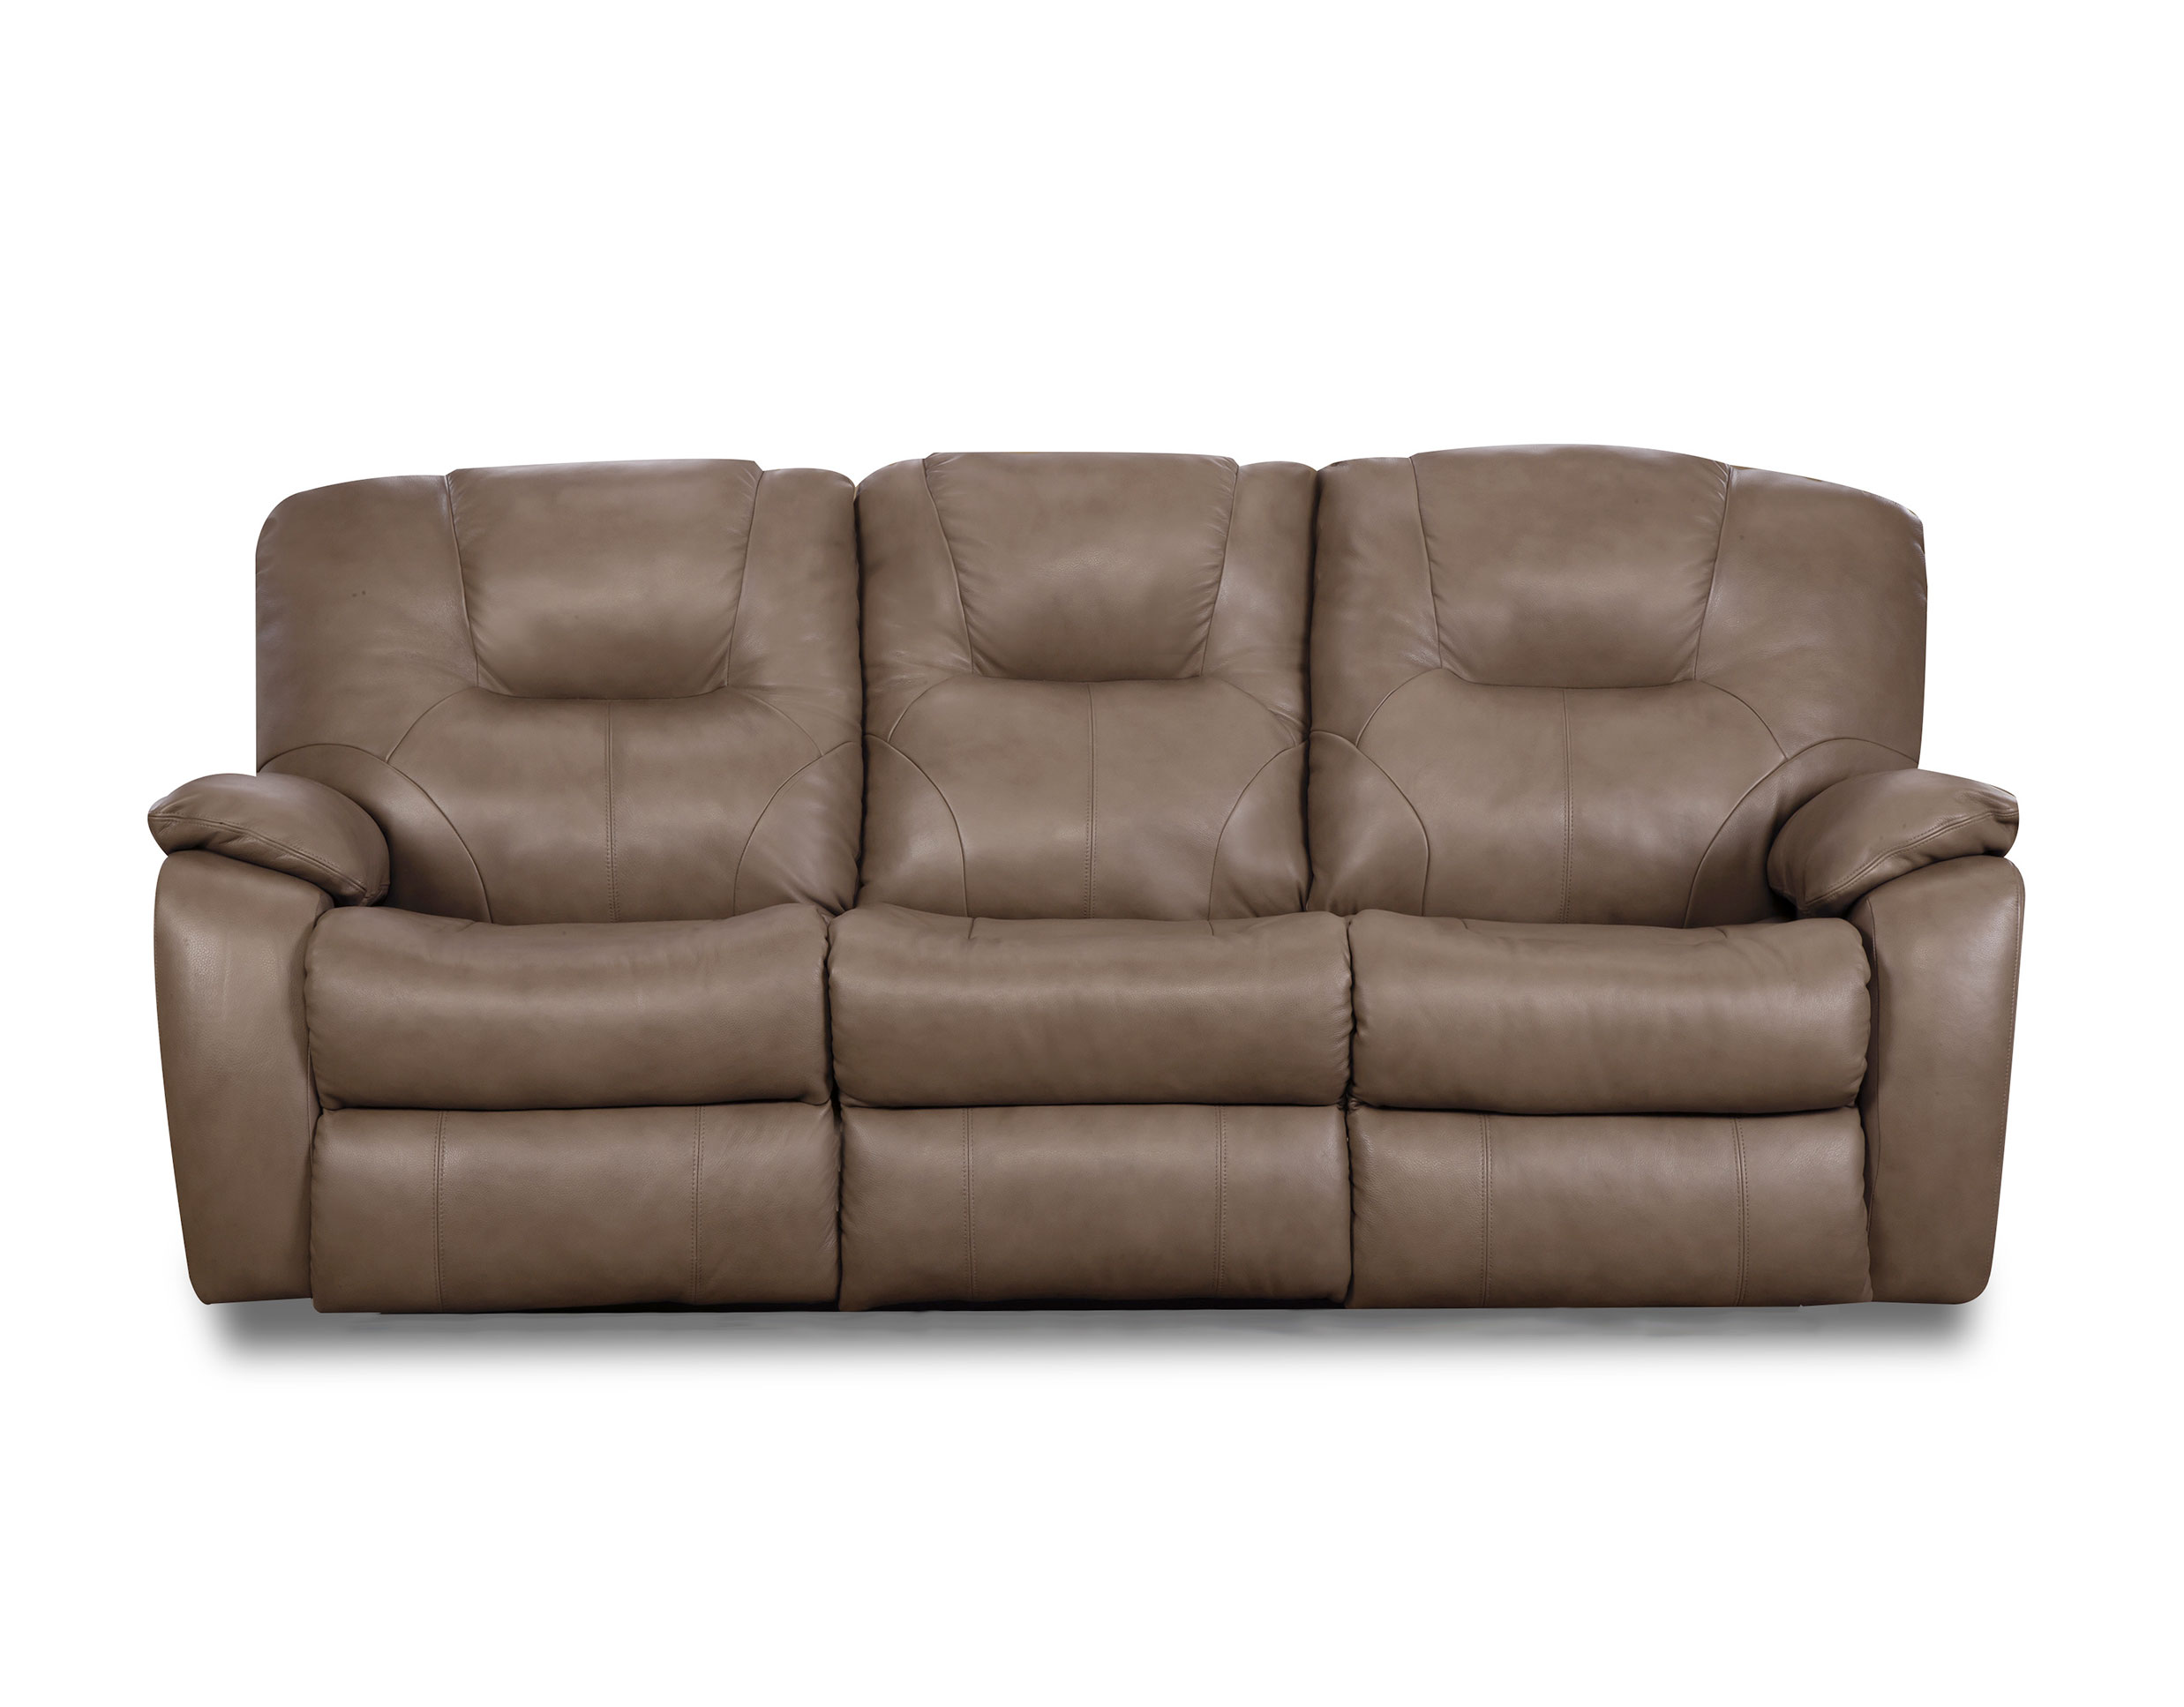 838-61P-AVALON-IN-936-17-ST.-LAURENT-TAUPE-SOFA-SWP-PU_web